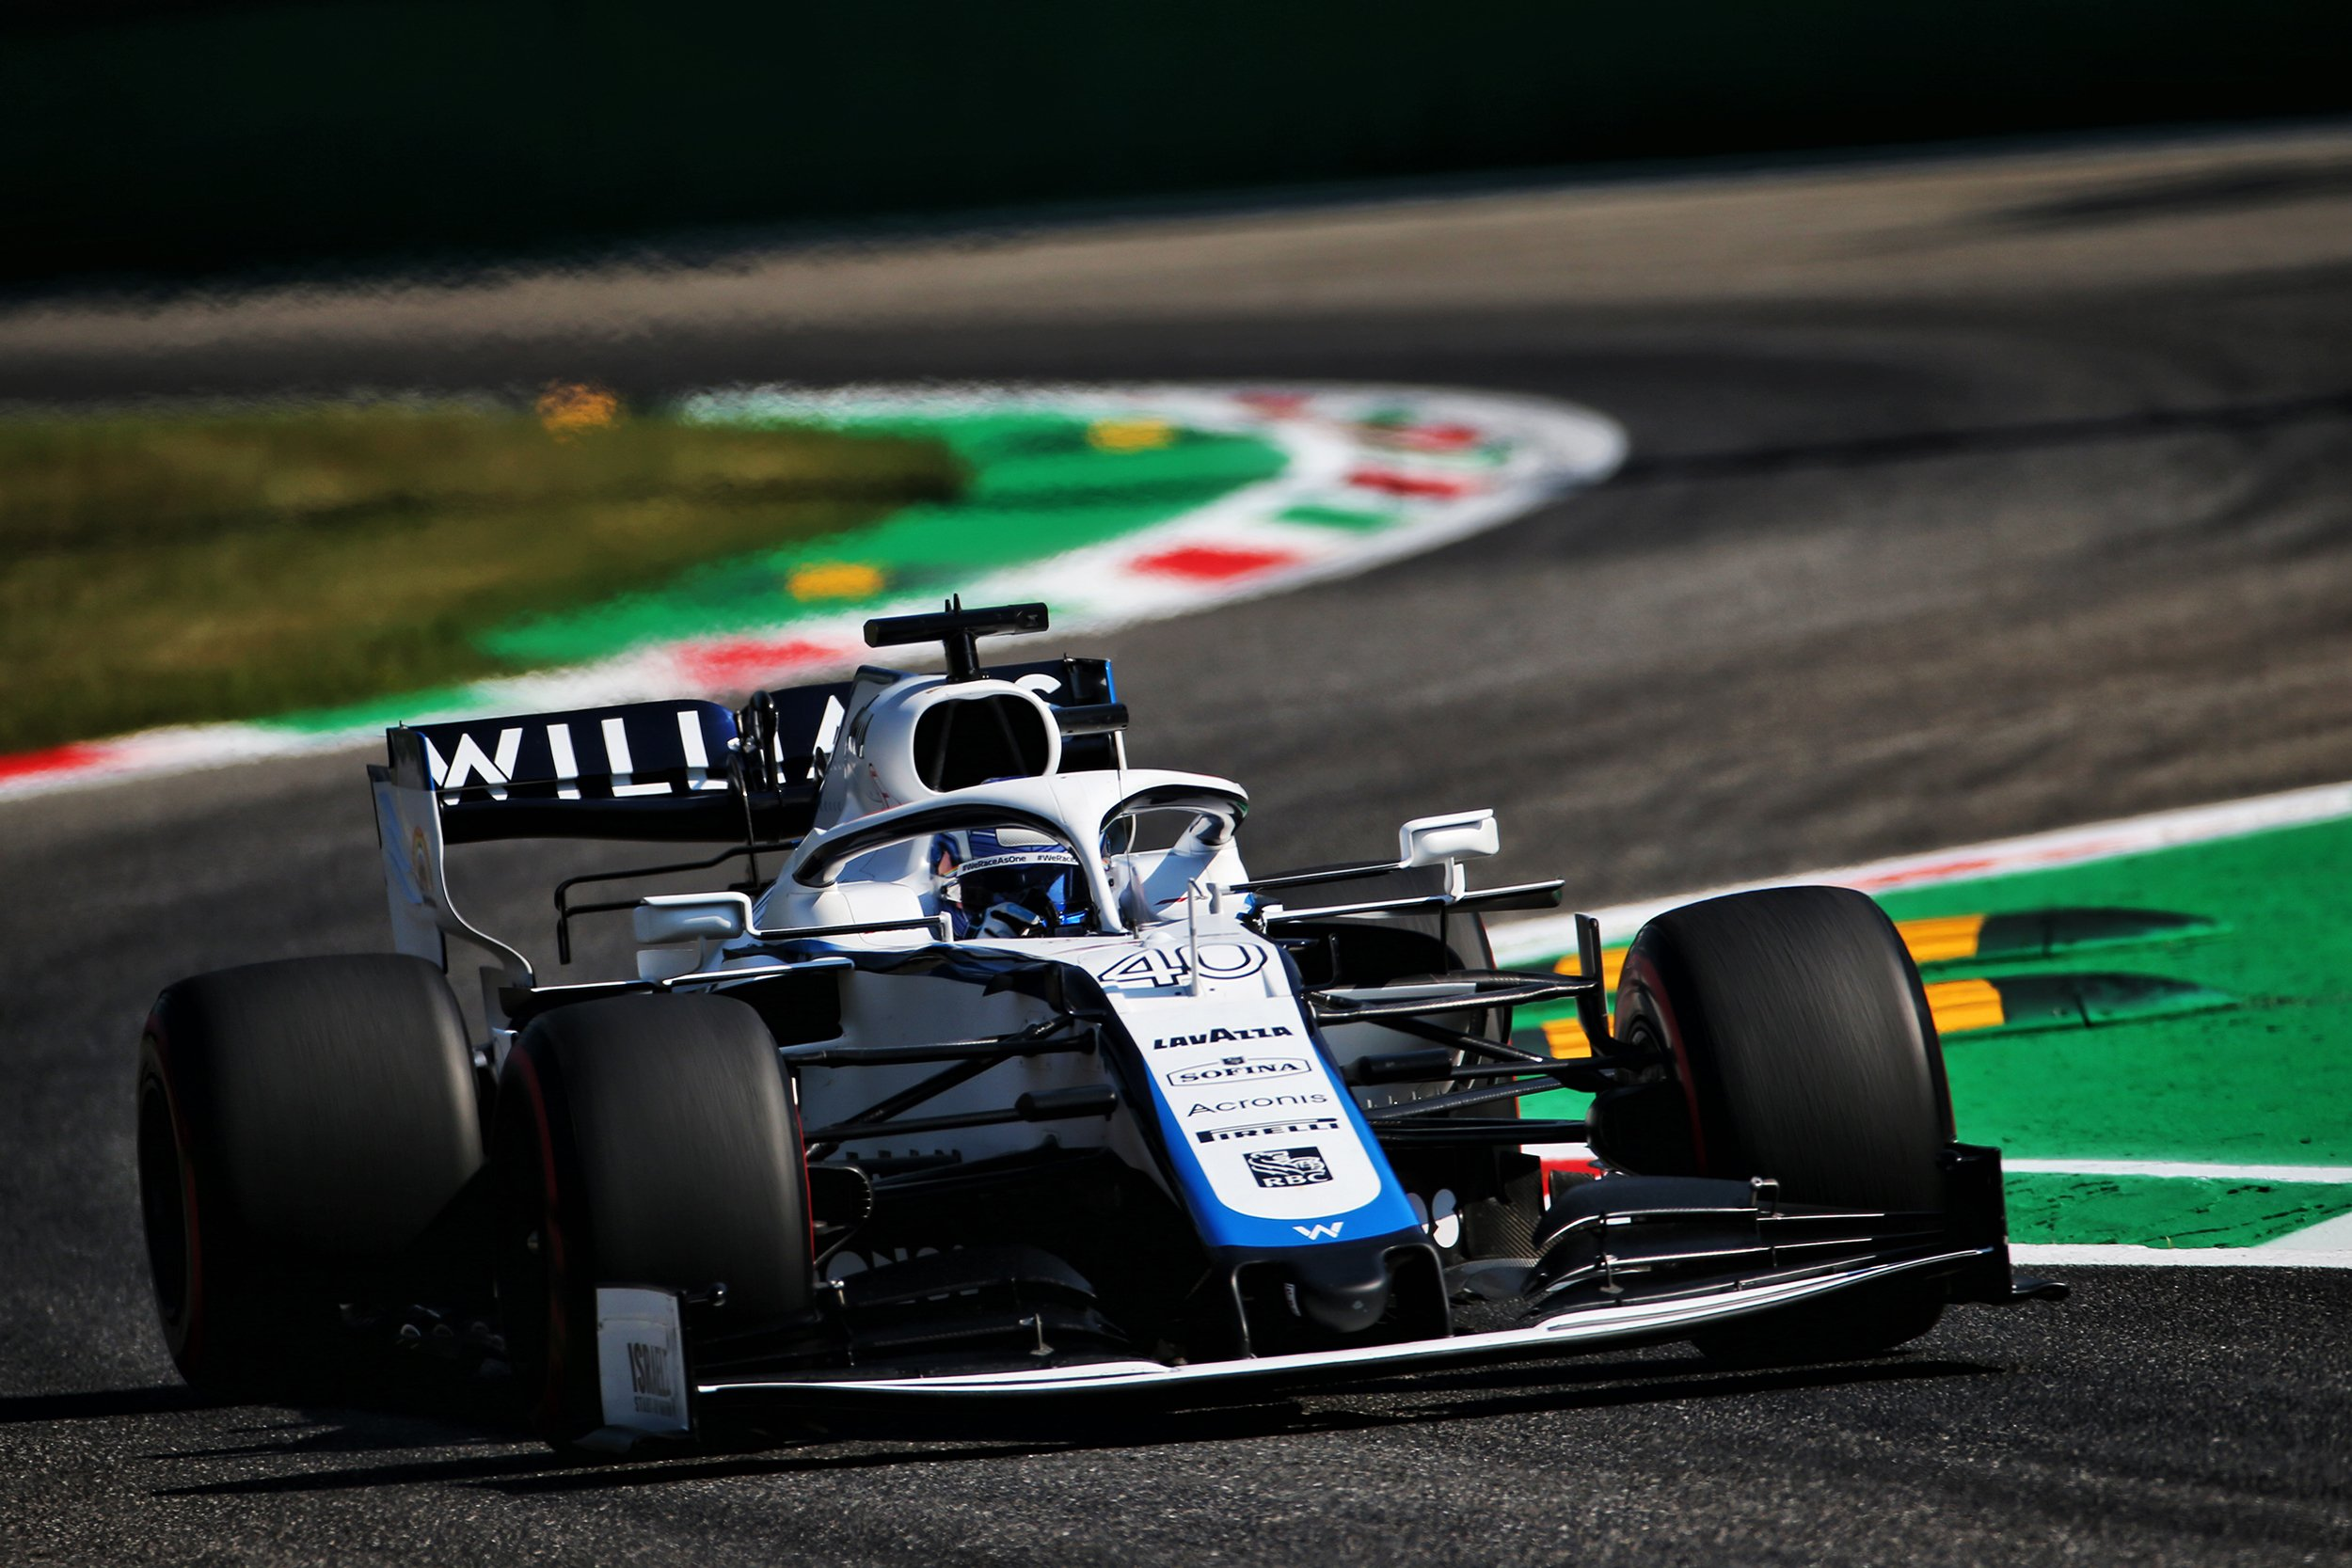 Aitken e Nissany con Williams nei Rookie Test di Abu Dhabi